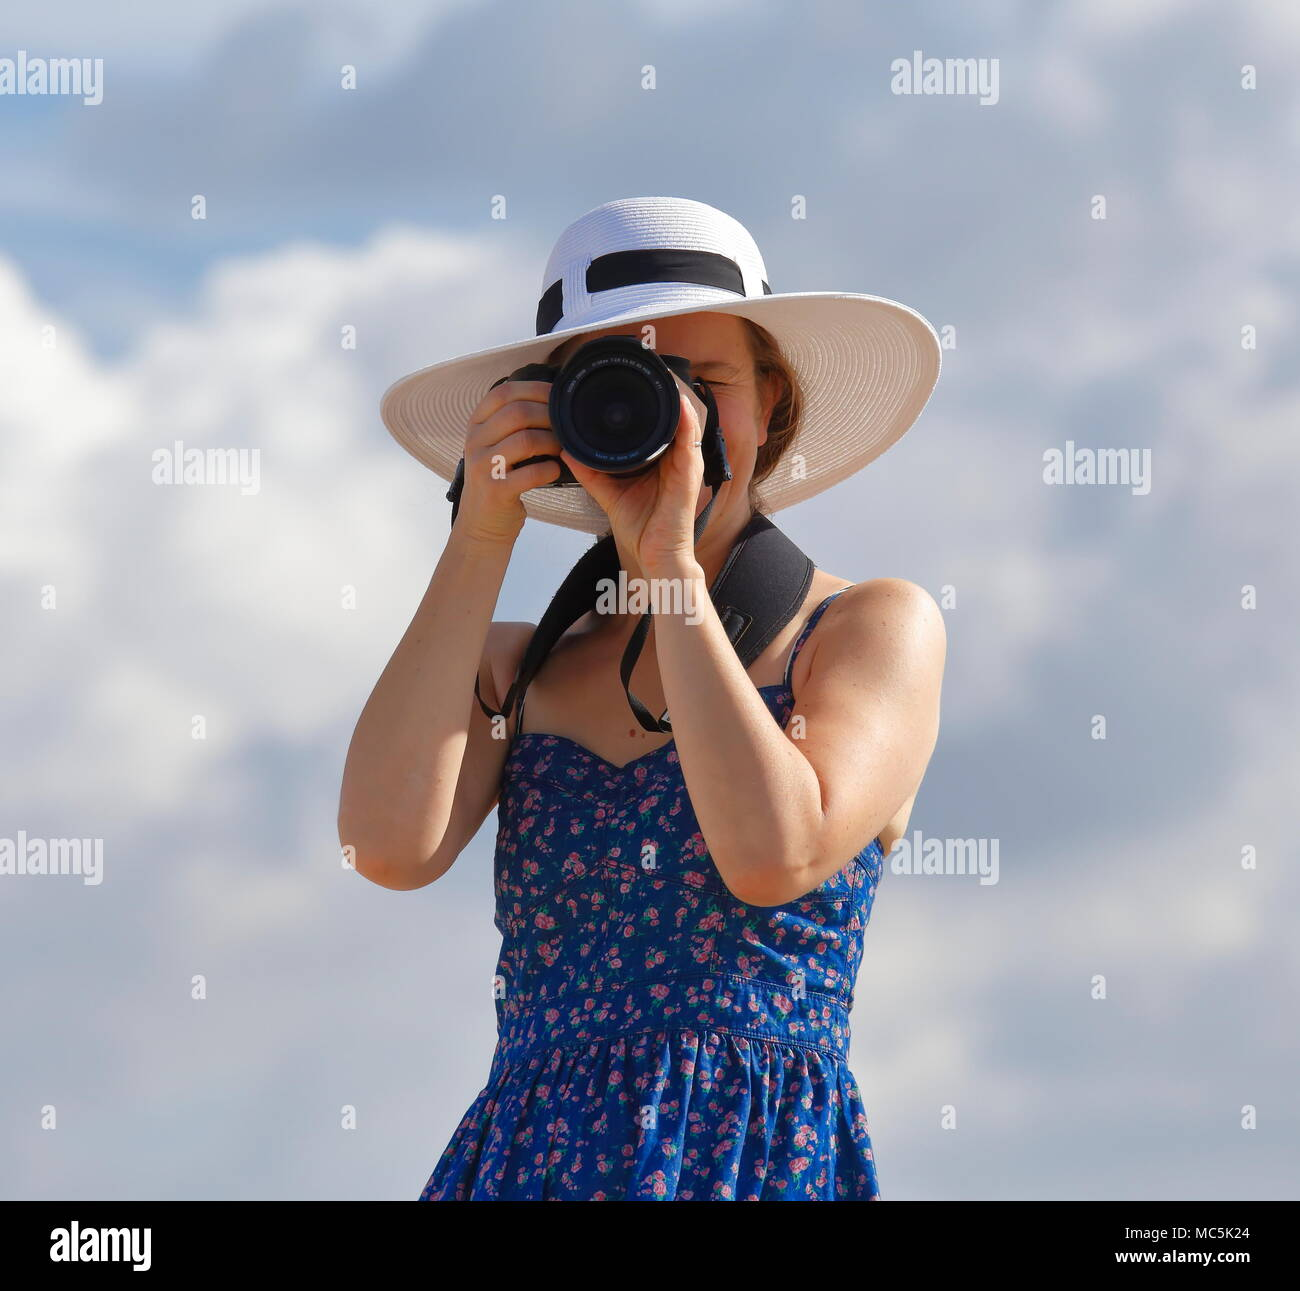 Young woman in white sunhat, sunglasses, and blue sundress. She is holding a camera to her eye and is looking straight towards the photographer - Stock Image